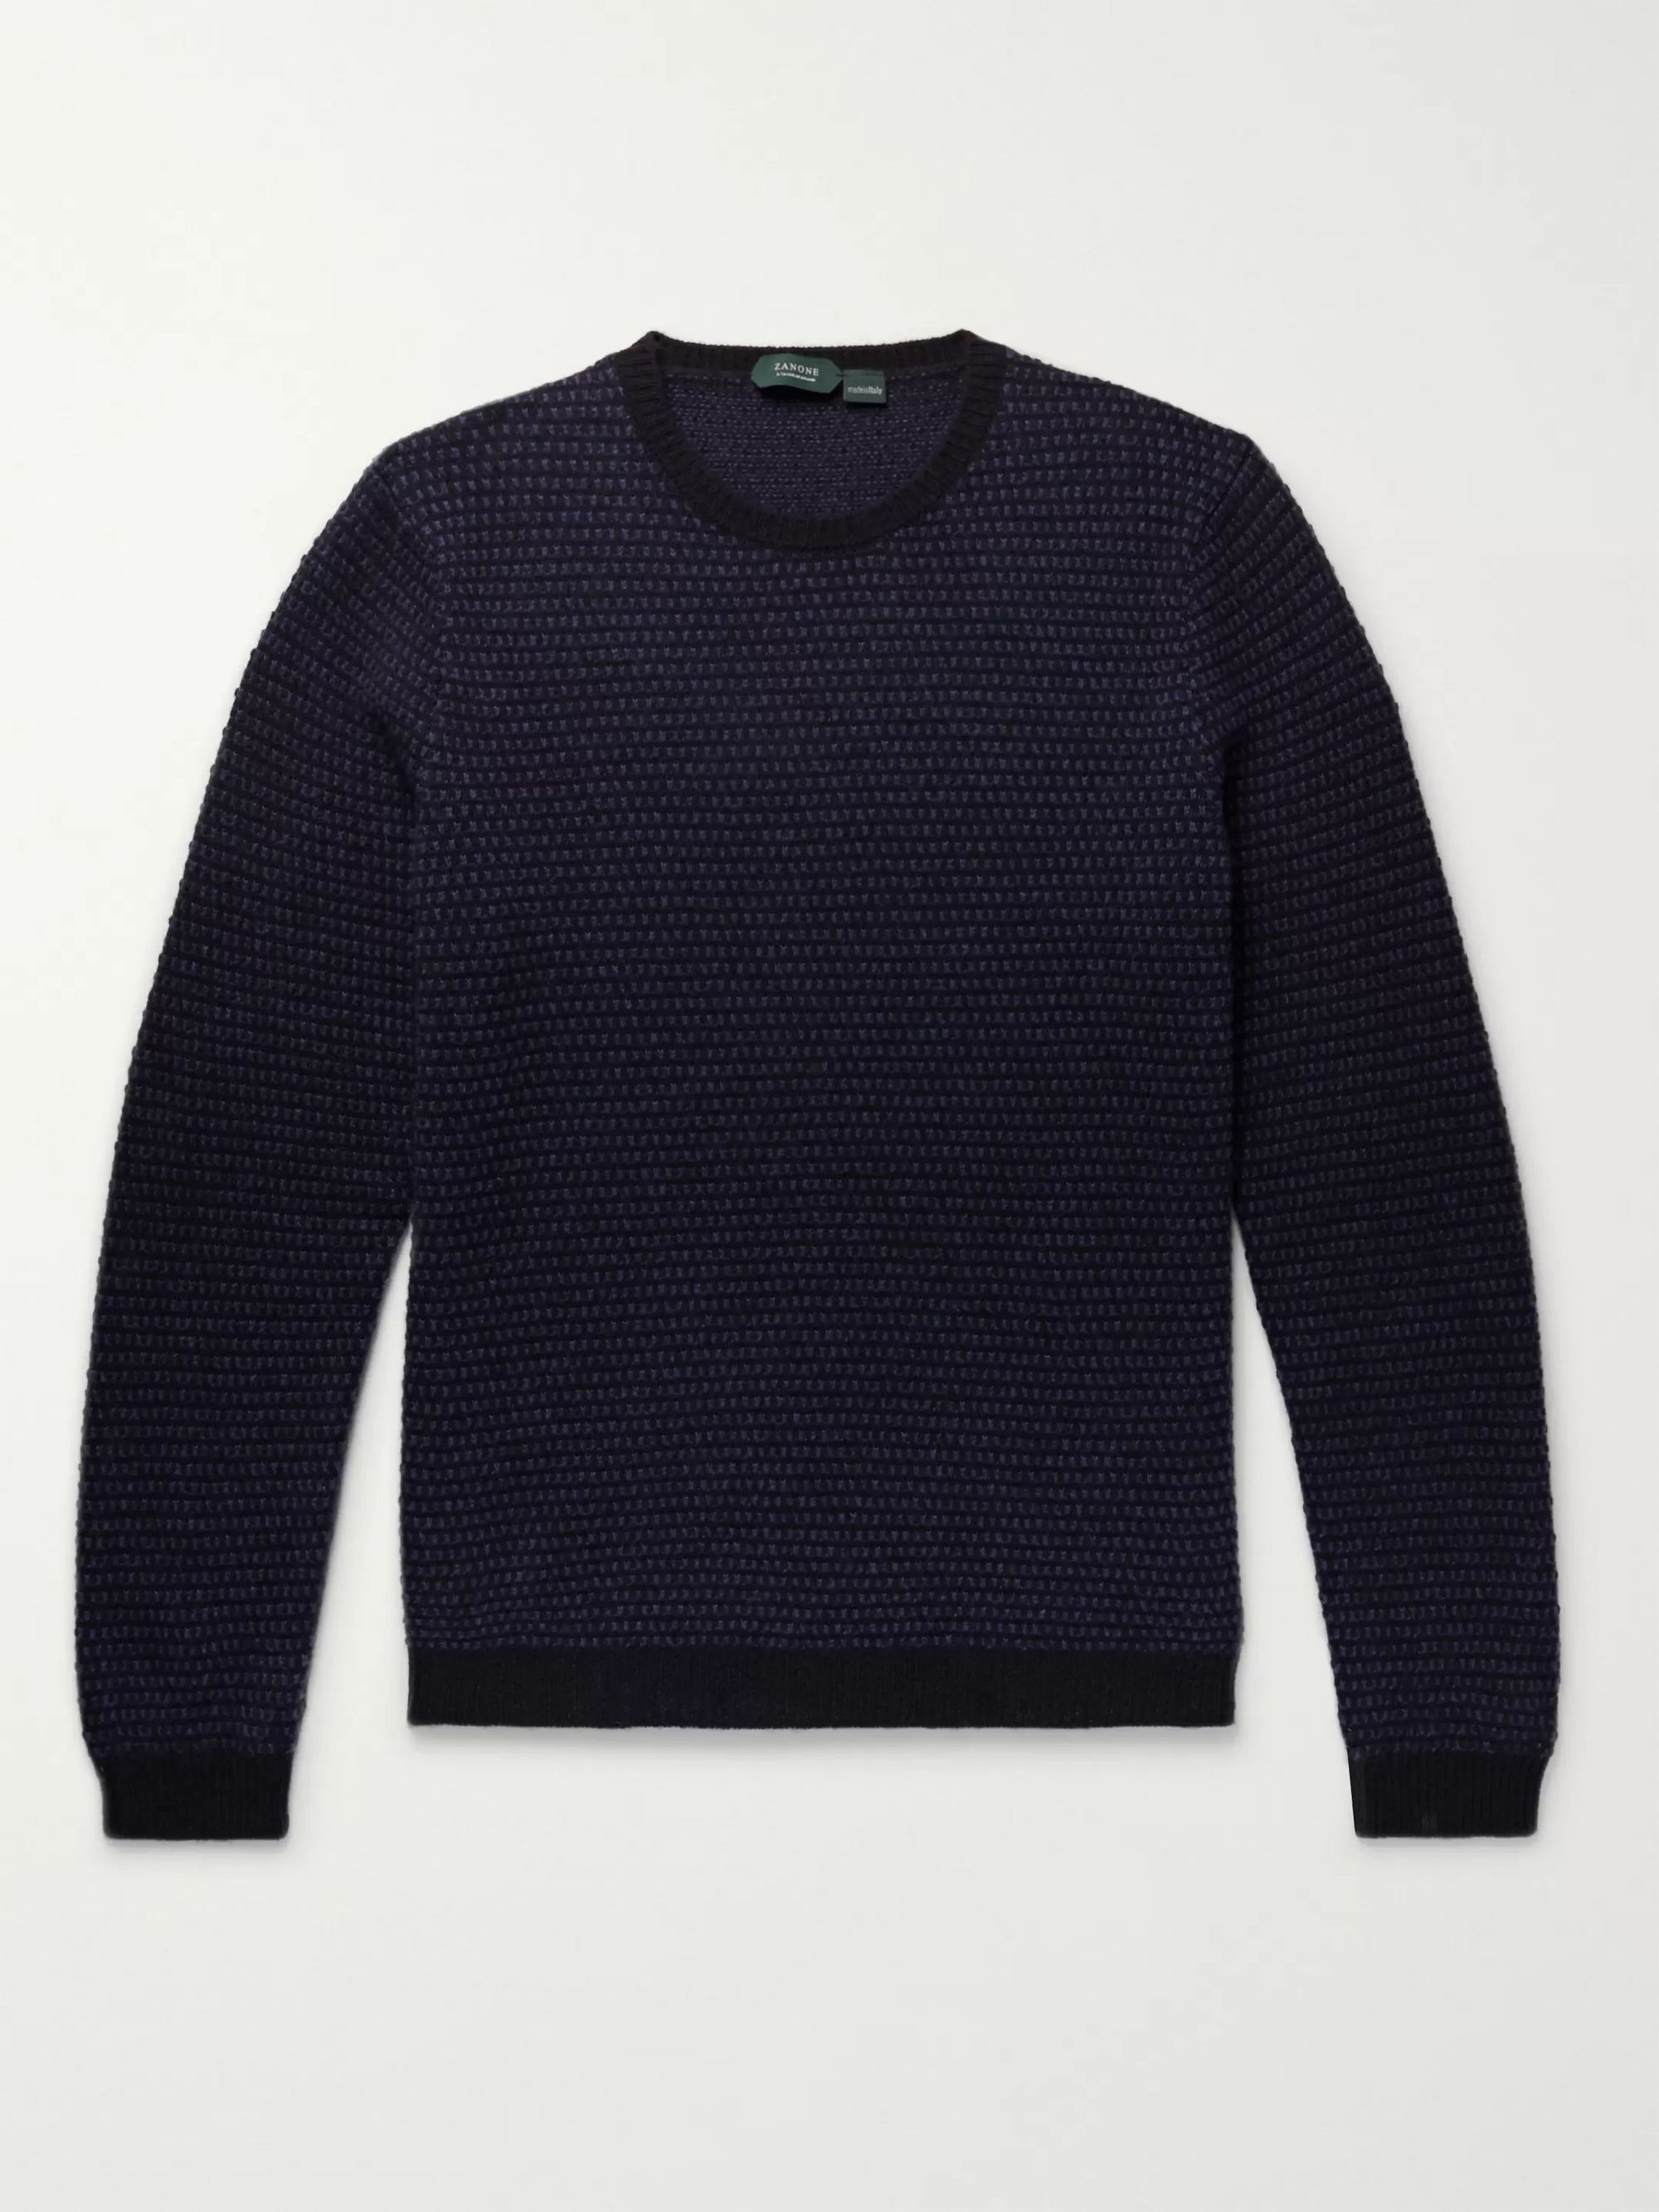 Incotex Birdseye Virgin Wool-Jacquard Sweater